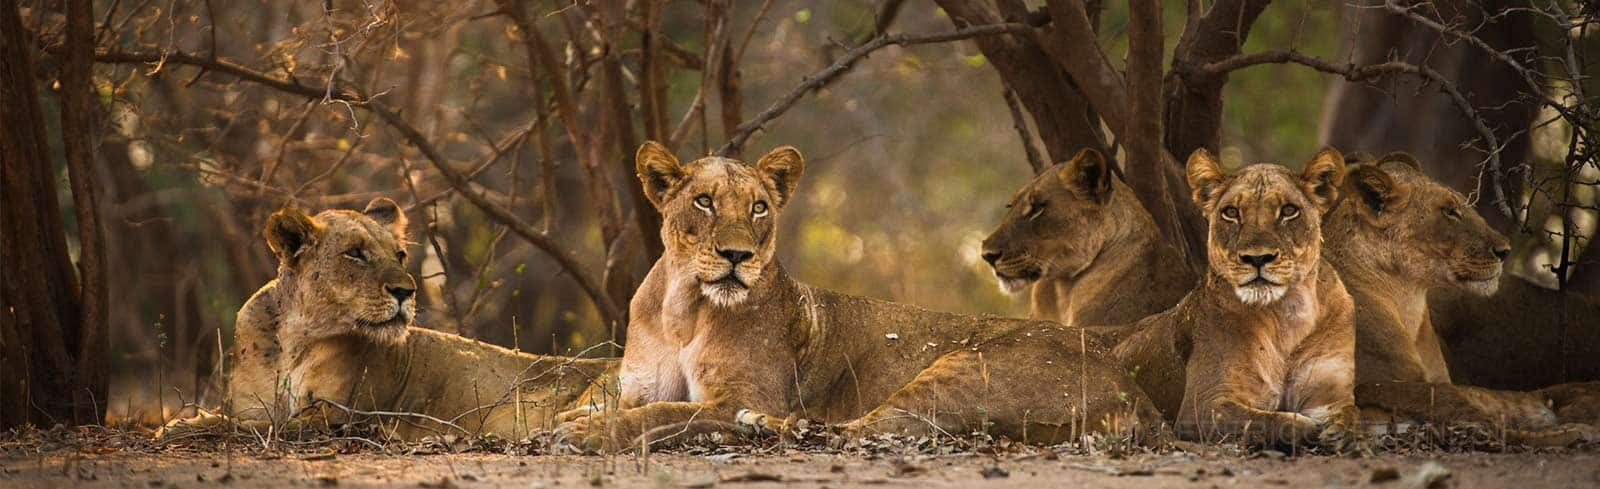 Lions Mana Pools National Park - Federico Veronesi